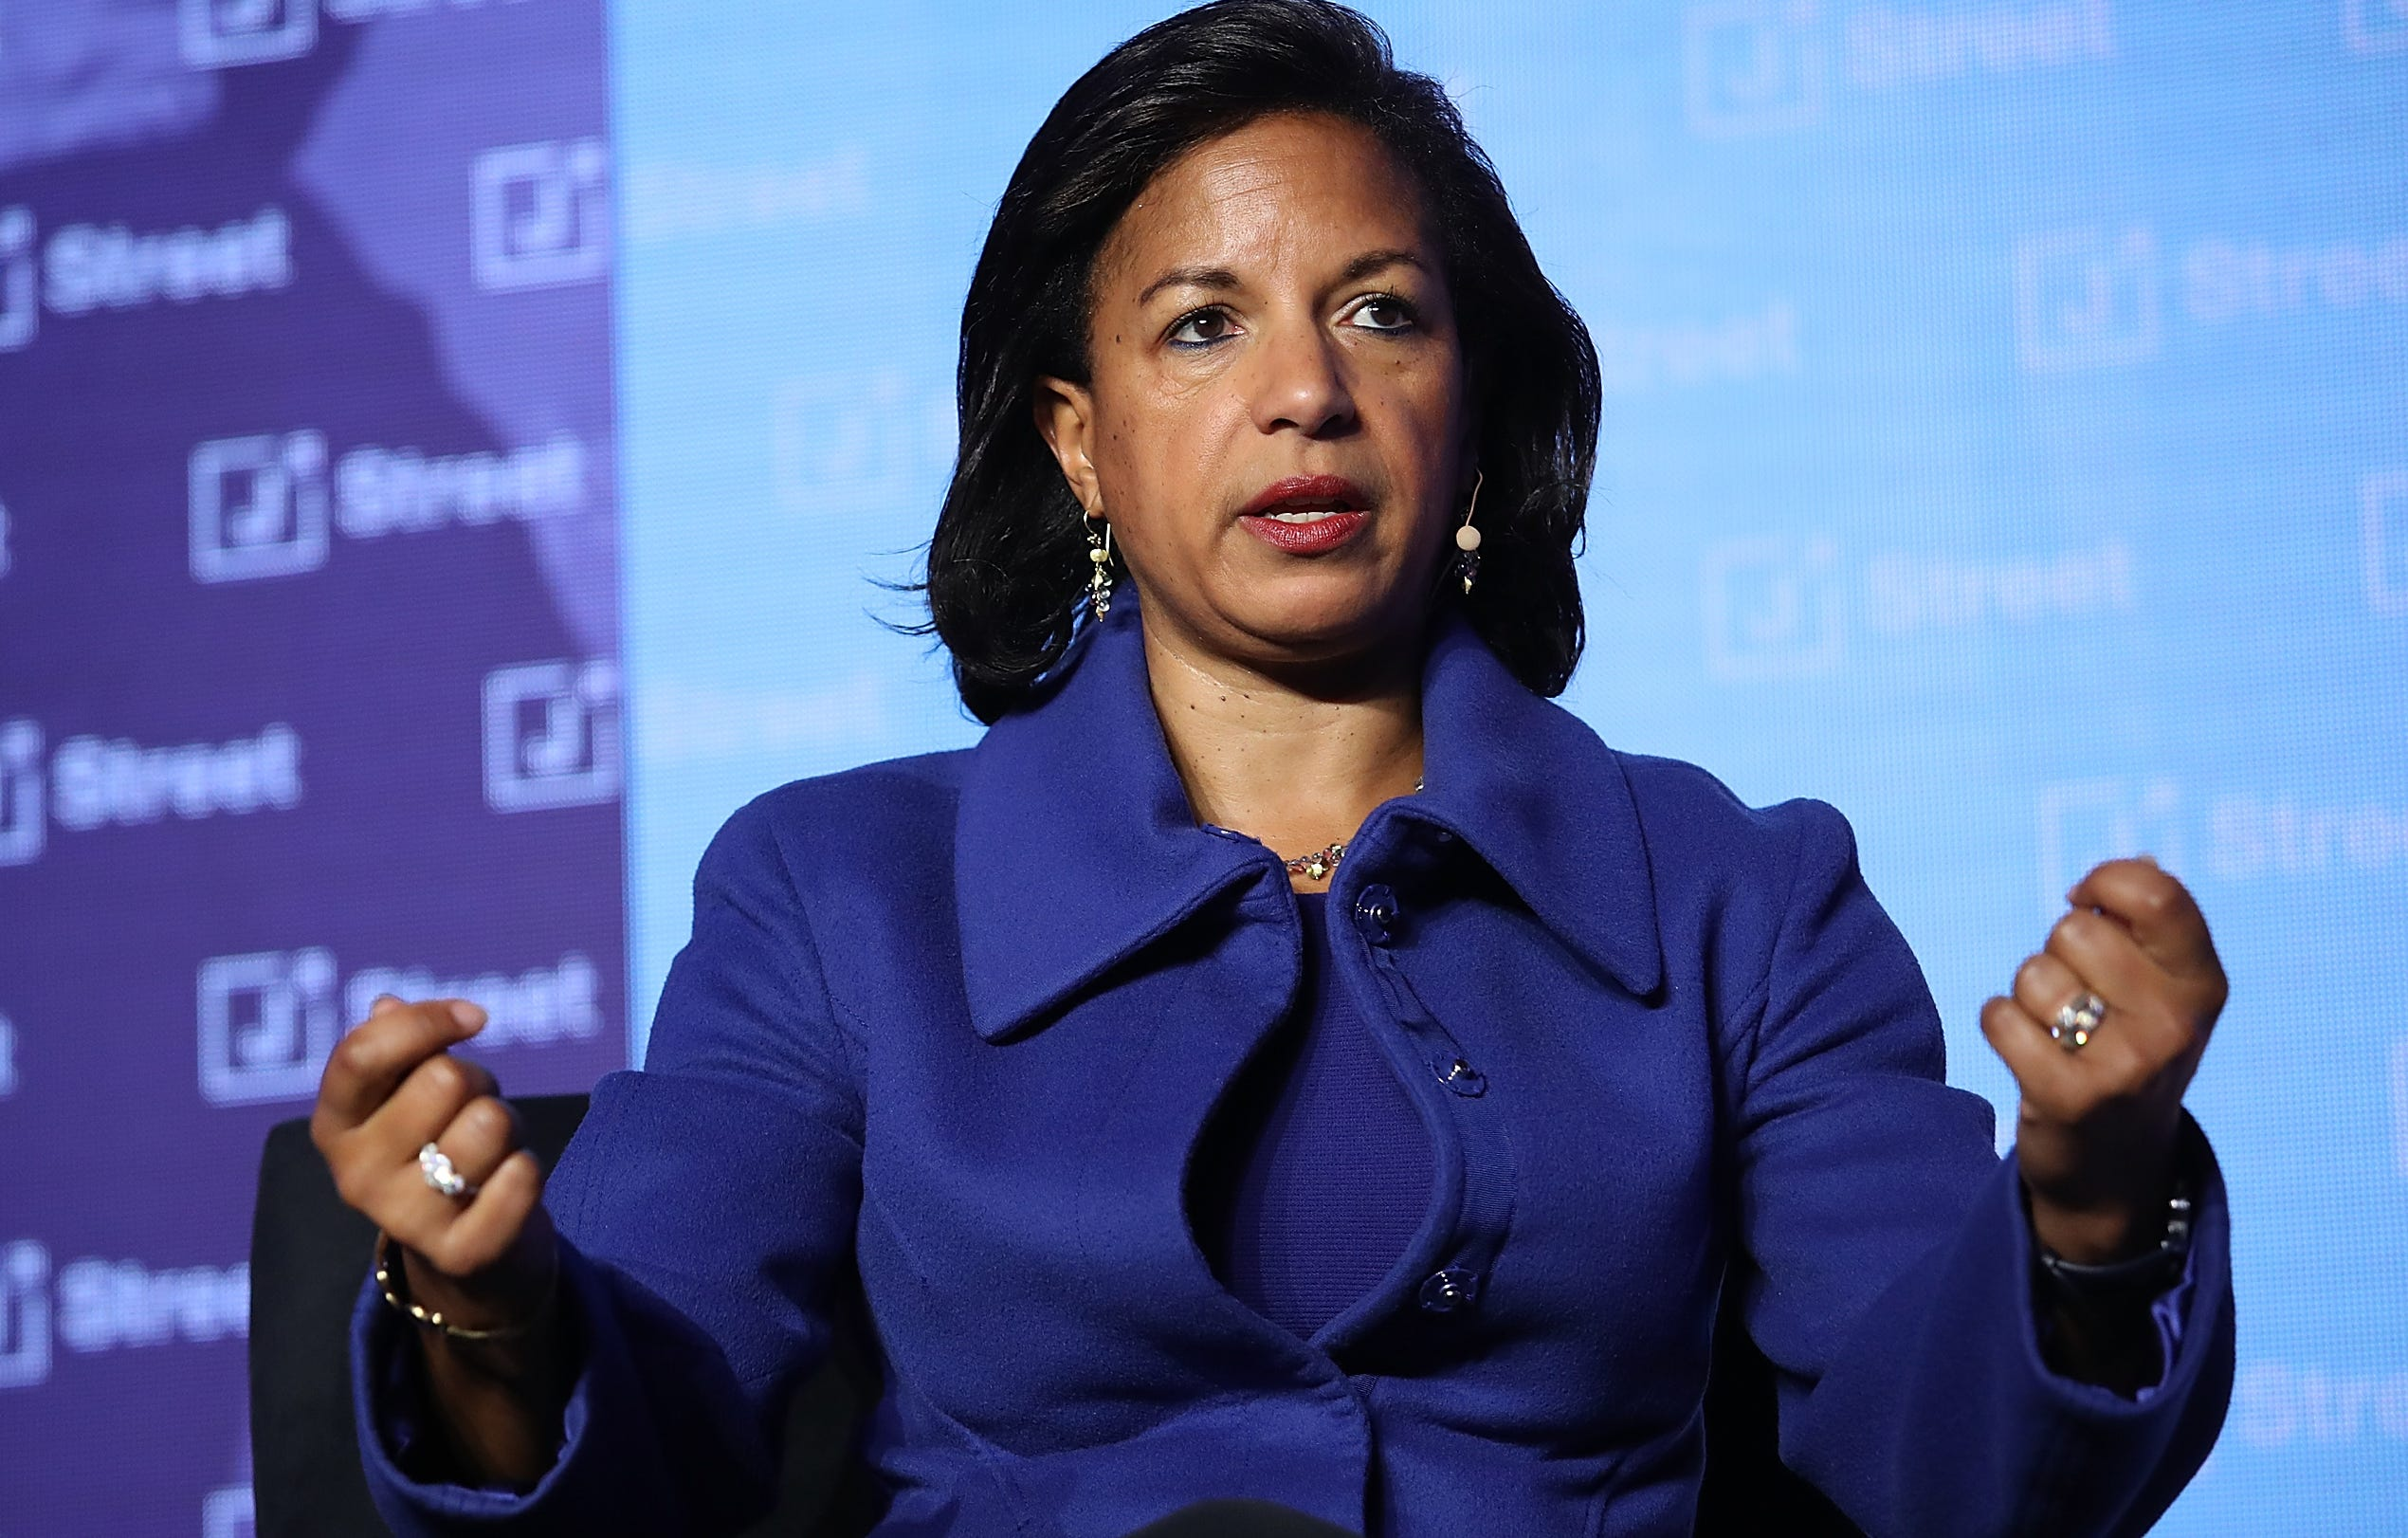 Former national security adviser Susan Rice speaks at the J Street 2018 National Conference on April 16, 2018 in Washington.